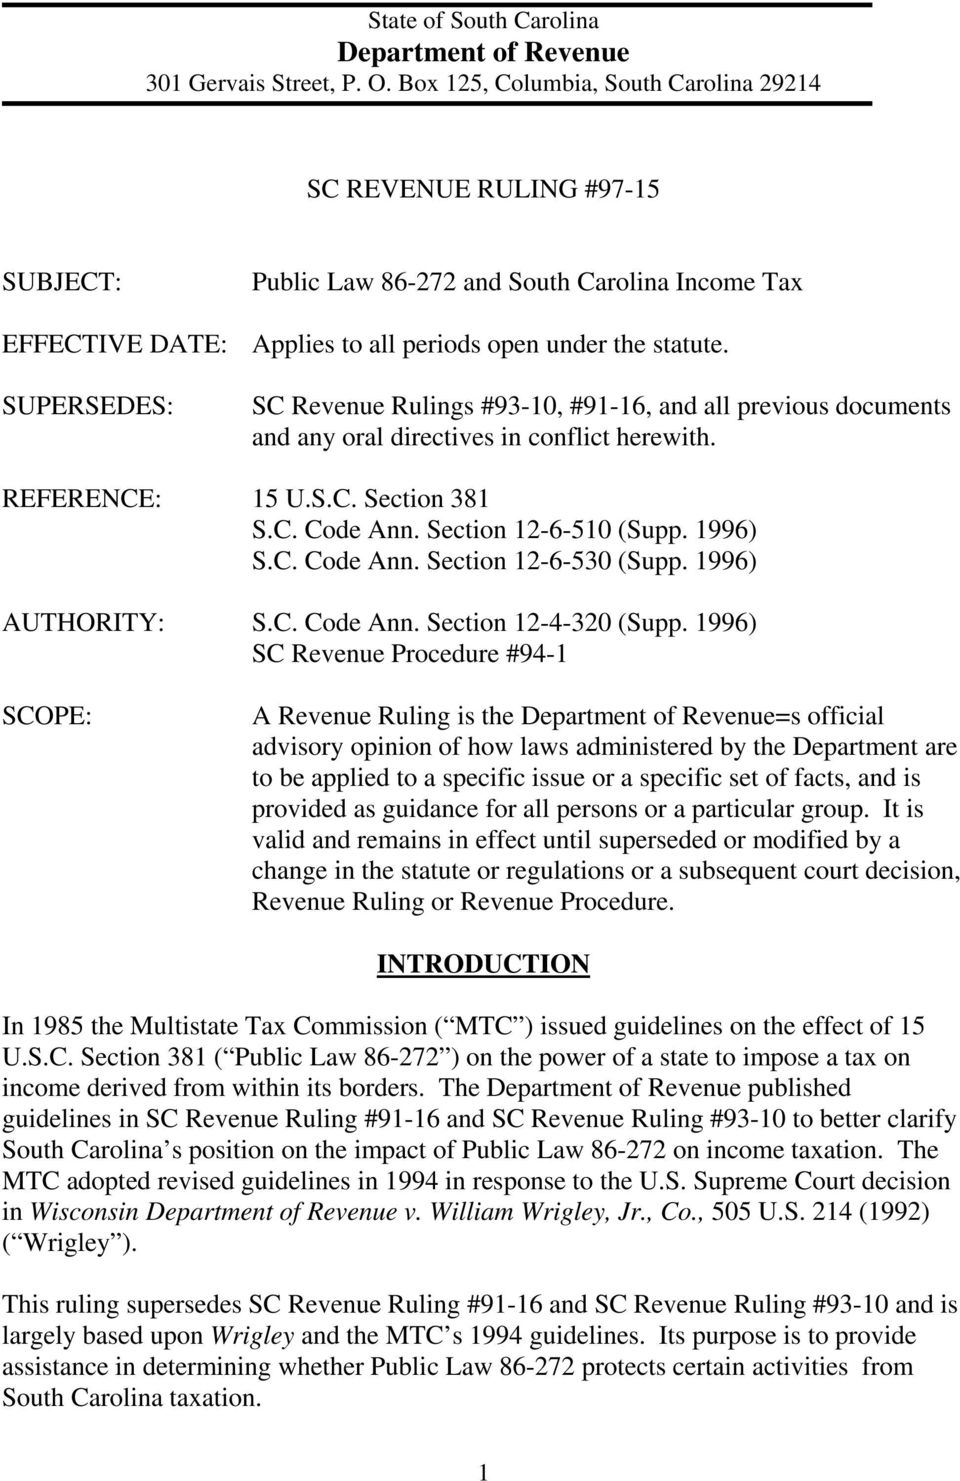 SUPERSEDES: SC Revenue Rulings #93-10, #91-16, and all previous documents and any oral directives in conflict herewith. REFERENCE: 15 U.S.C. Section 381 S.C. Code Ann. Section 12-6-510 (Supp. 1996) S.